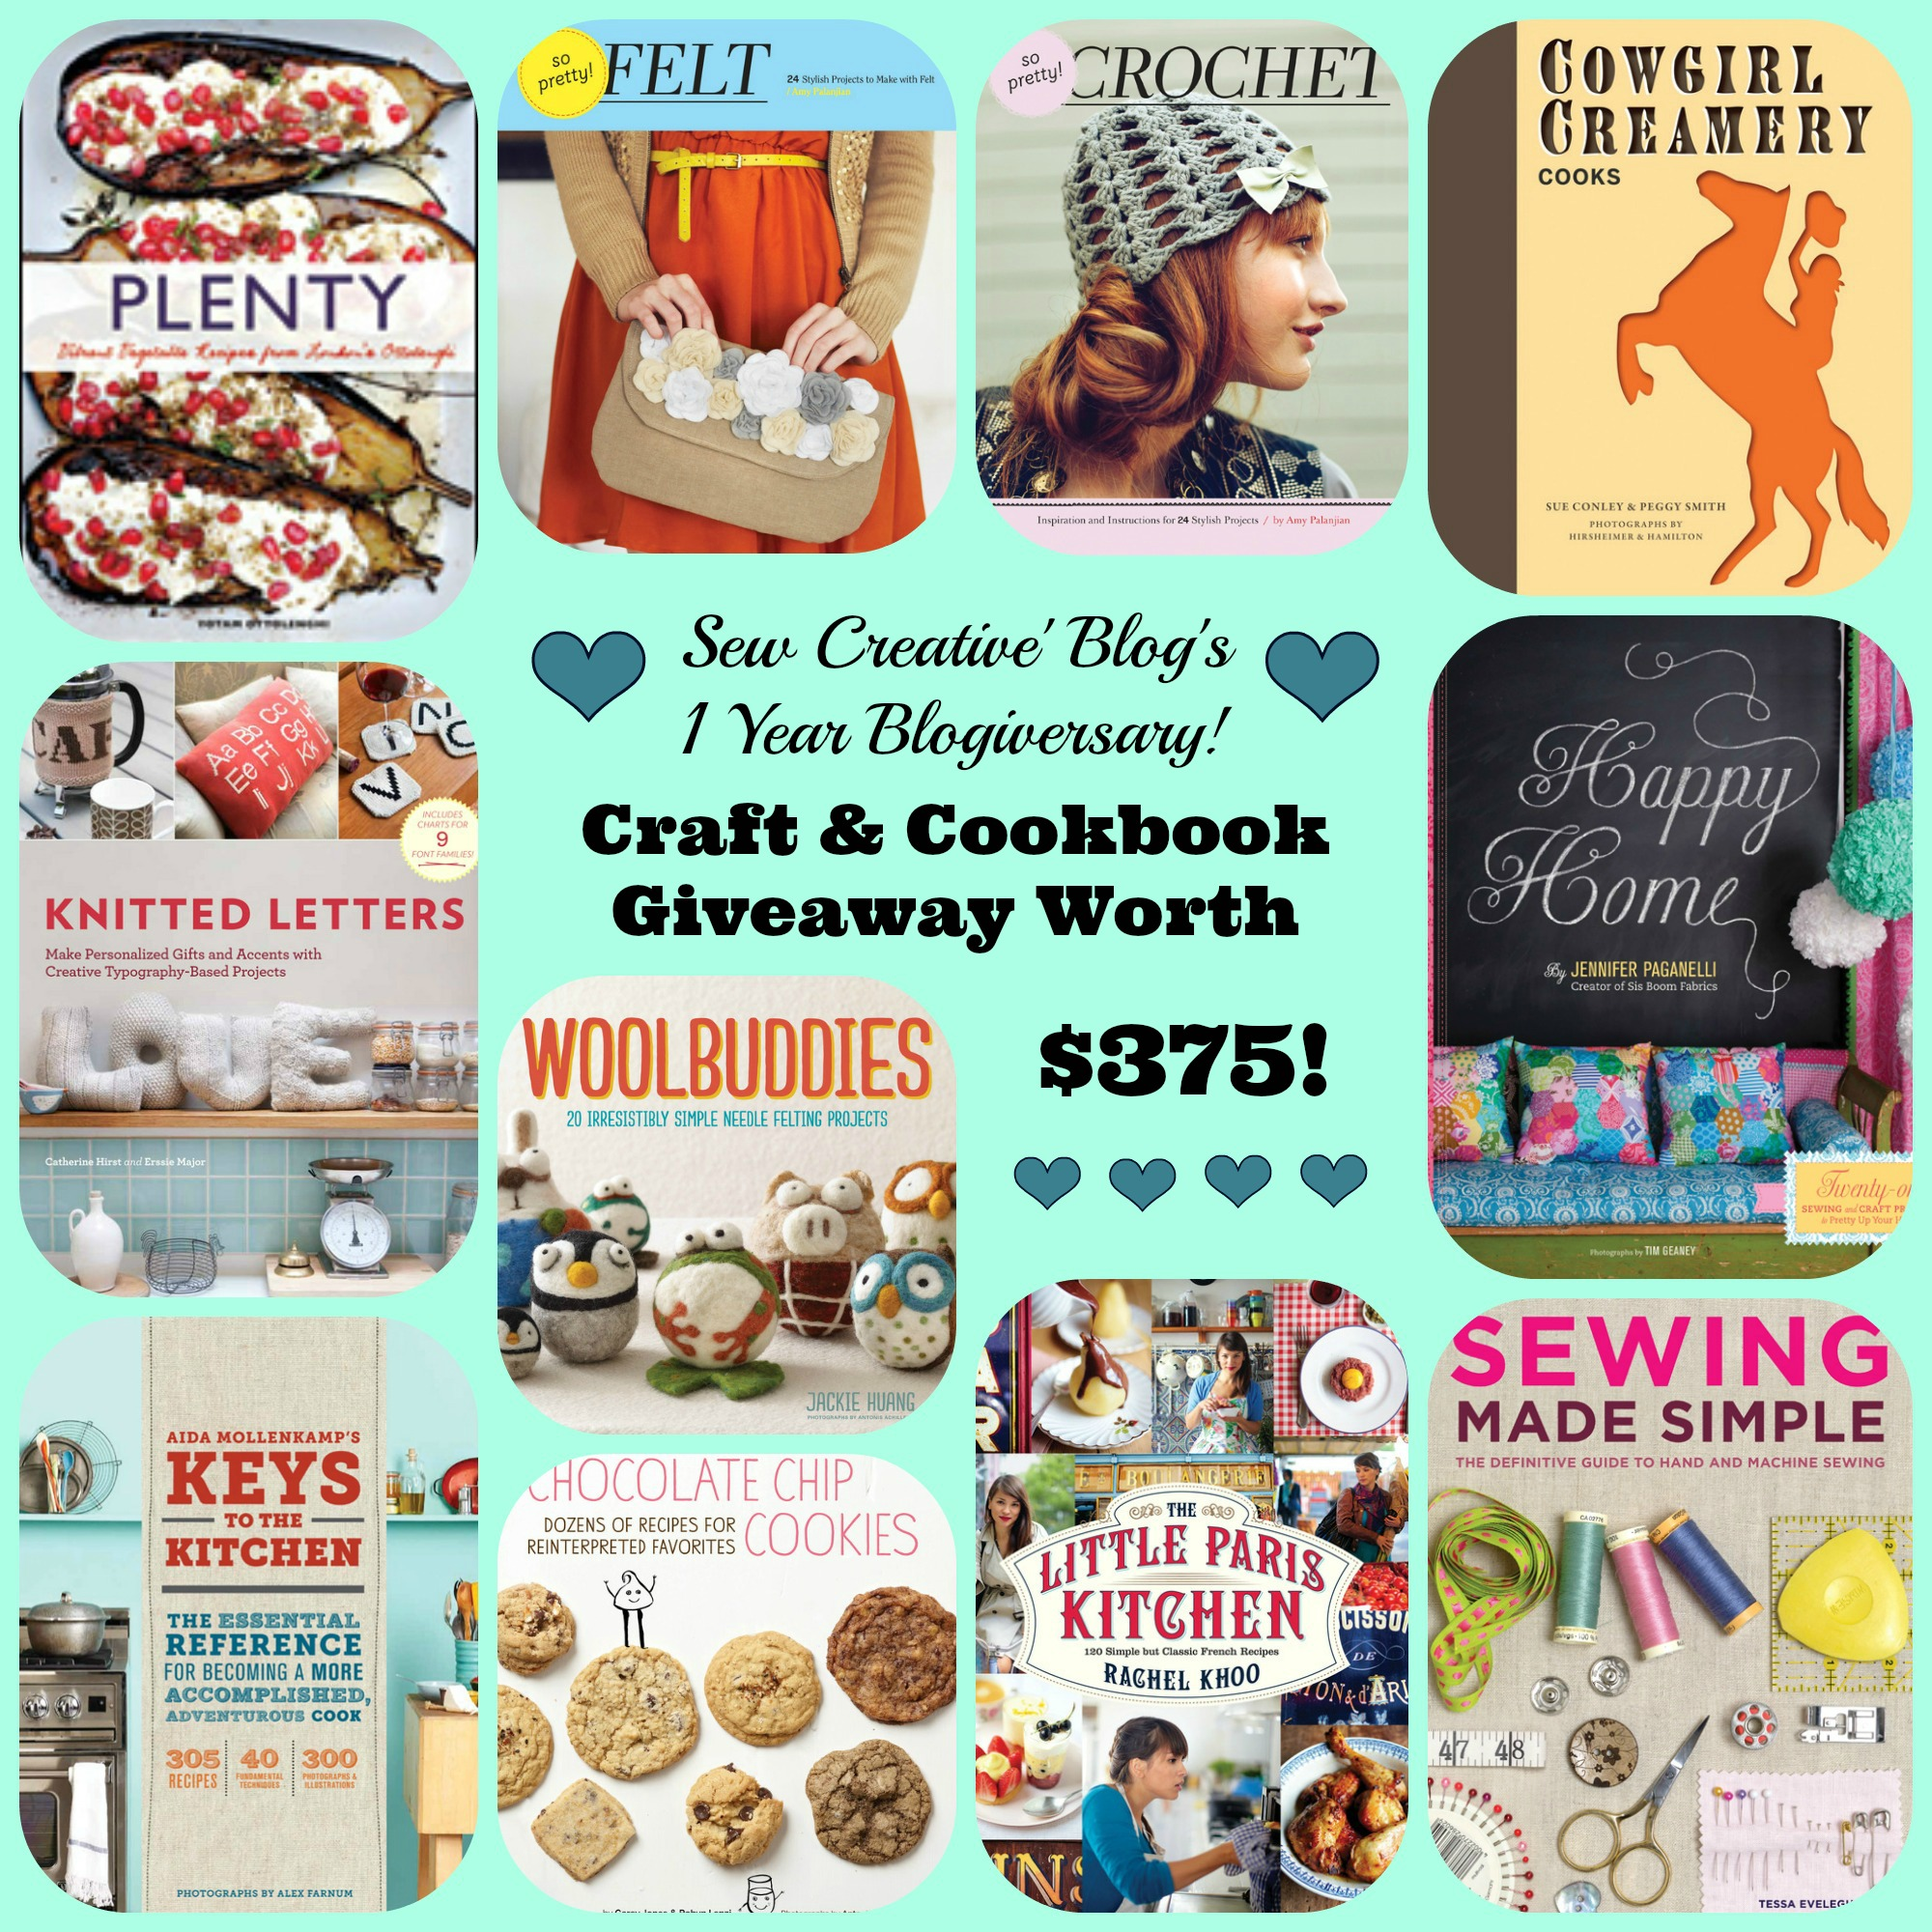 Sew-Creative-Blogs-1-Year-Blogiversary-Craft-Cookbook-Giveaway-Worth-375